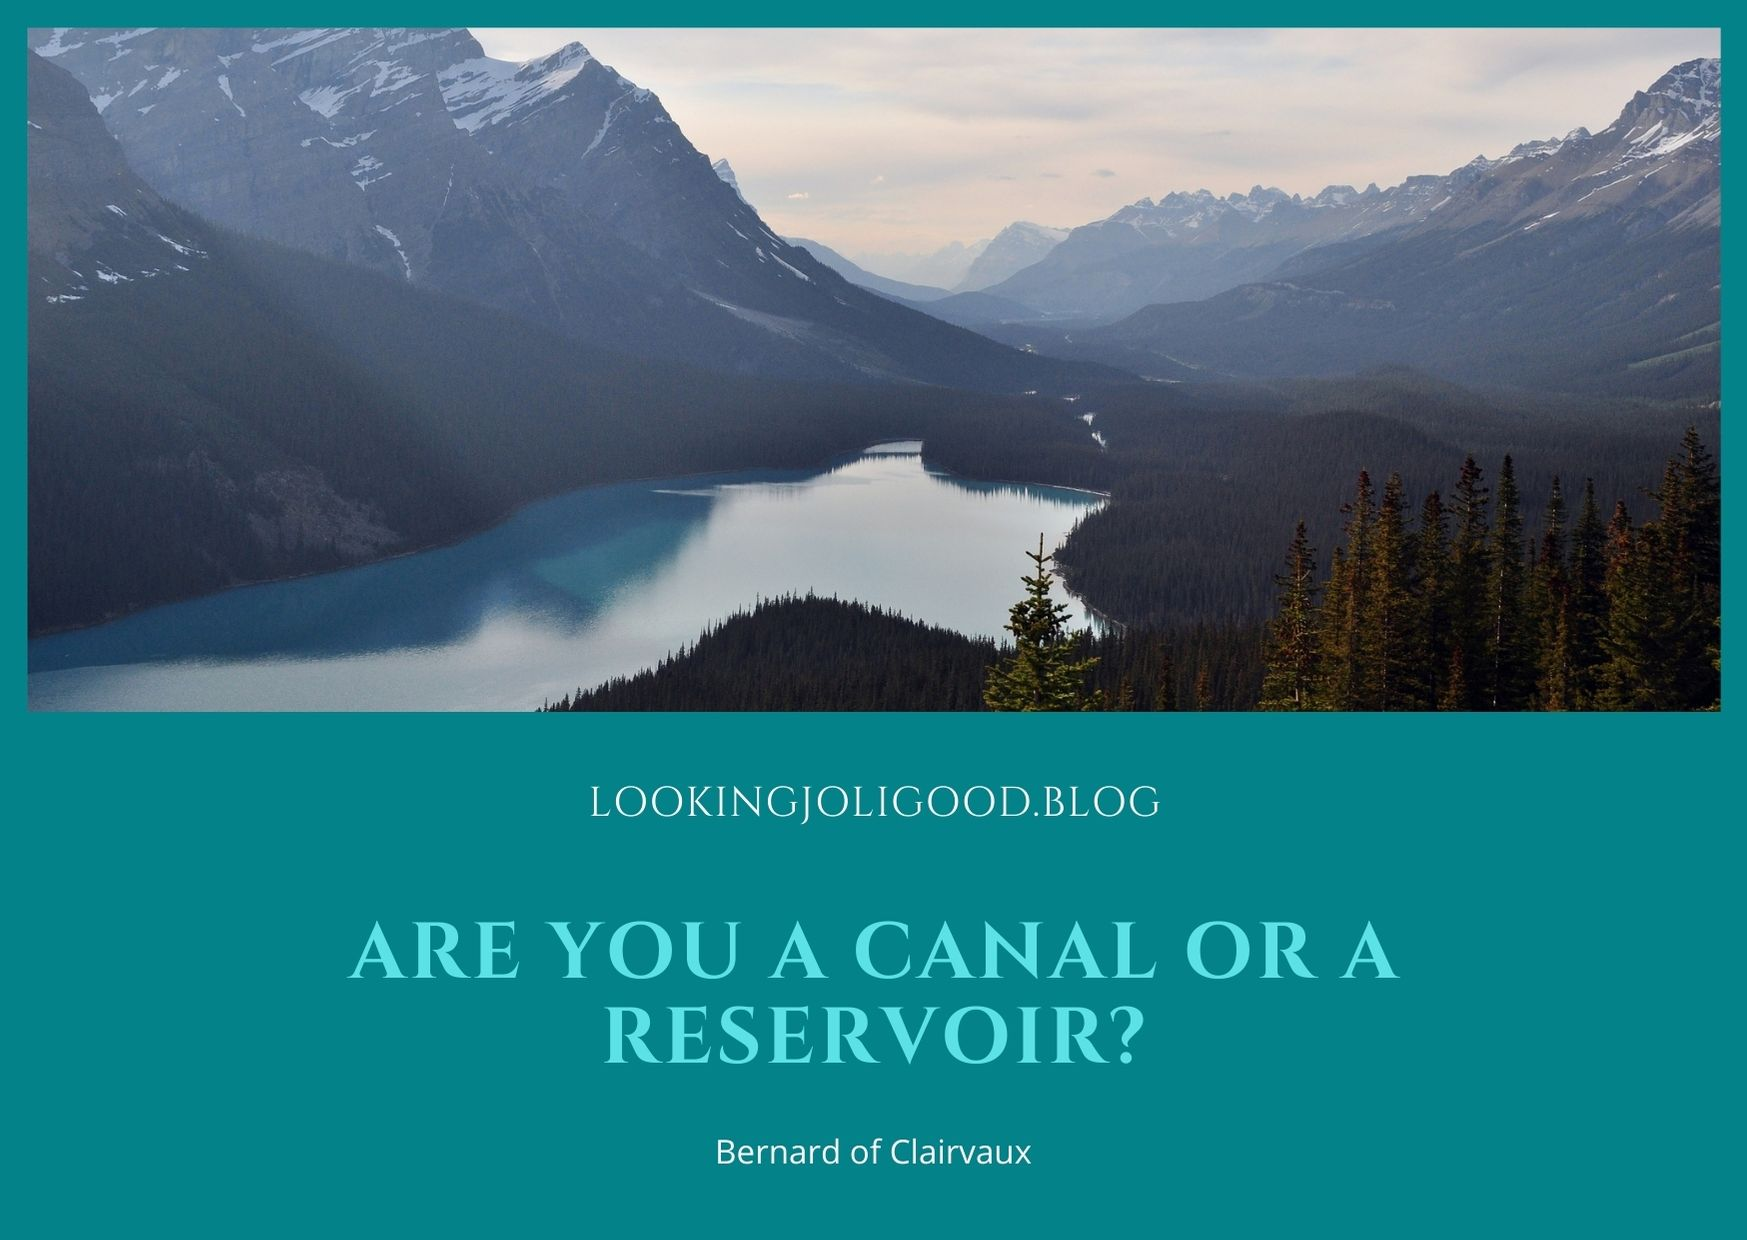 A Canal or A Reservoir: Do not try to be more generous than God   lookingjoligood.blog